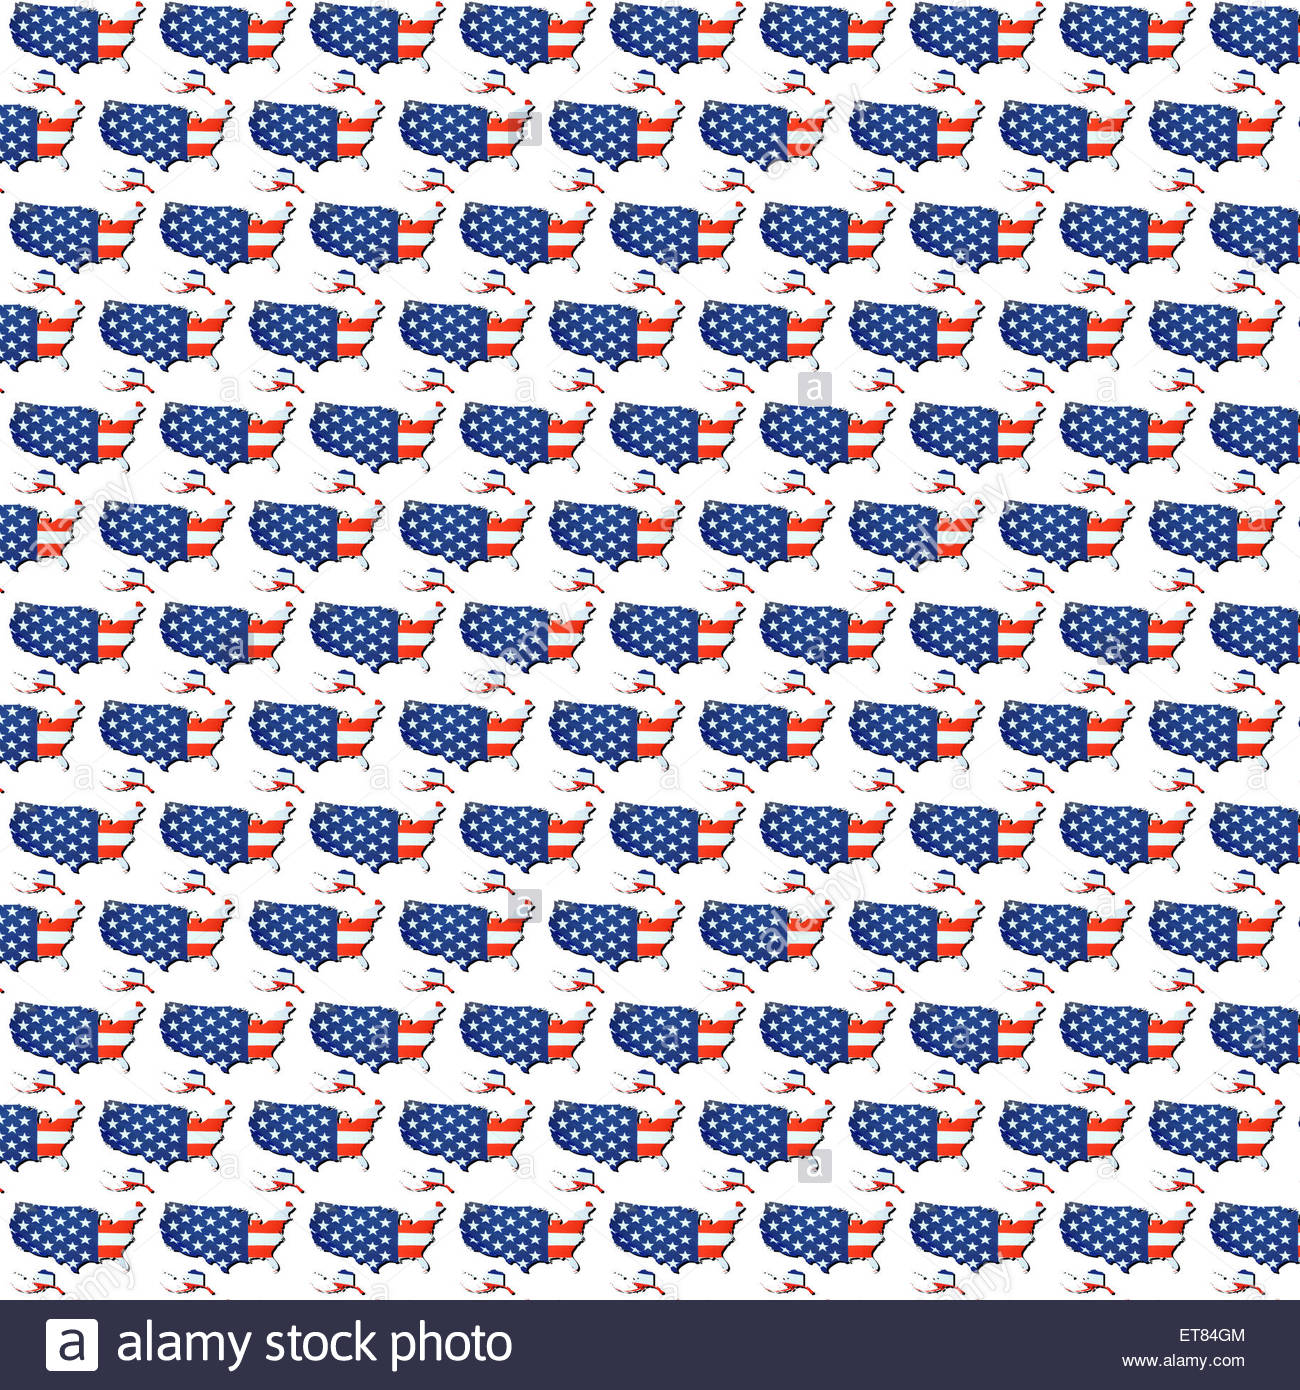 Digital Illustration   Wallpaper USA Map And Stars And Stripes Flag